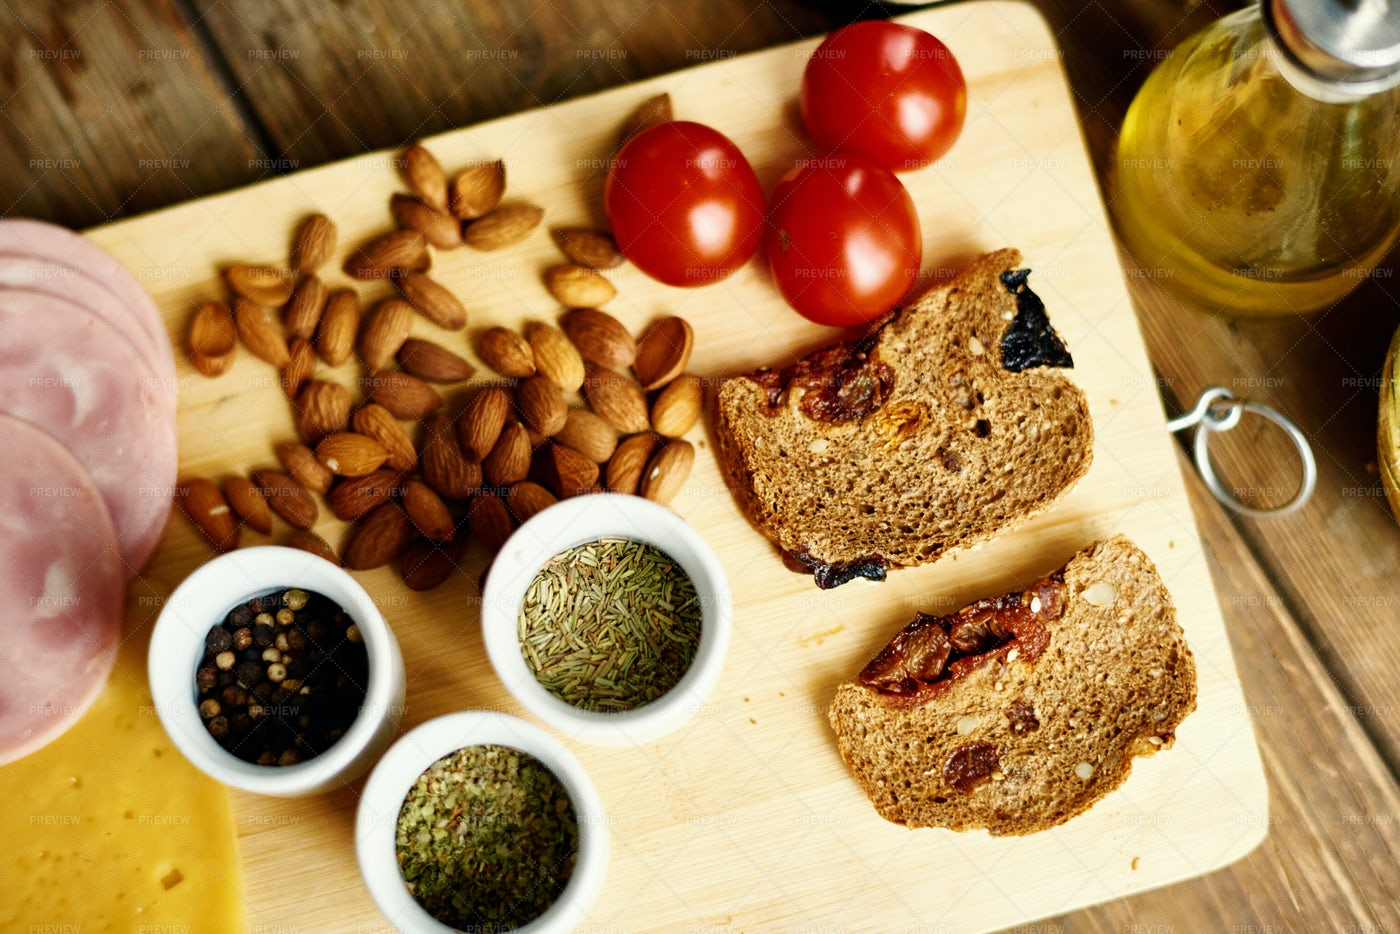 Ingredients For Healthy Sandwich: Stock Photos